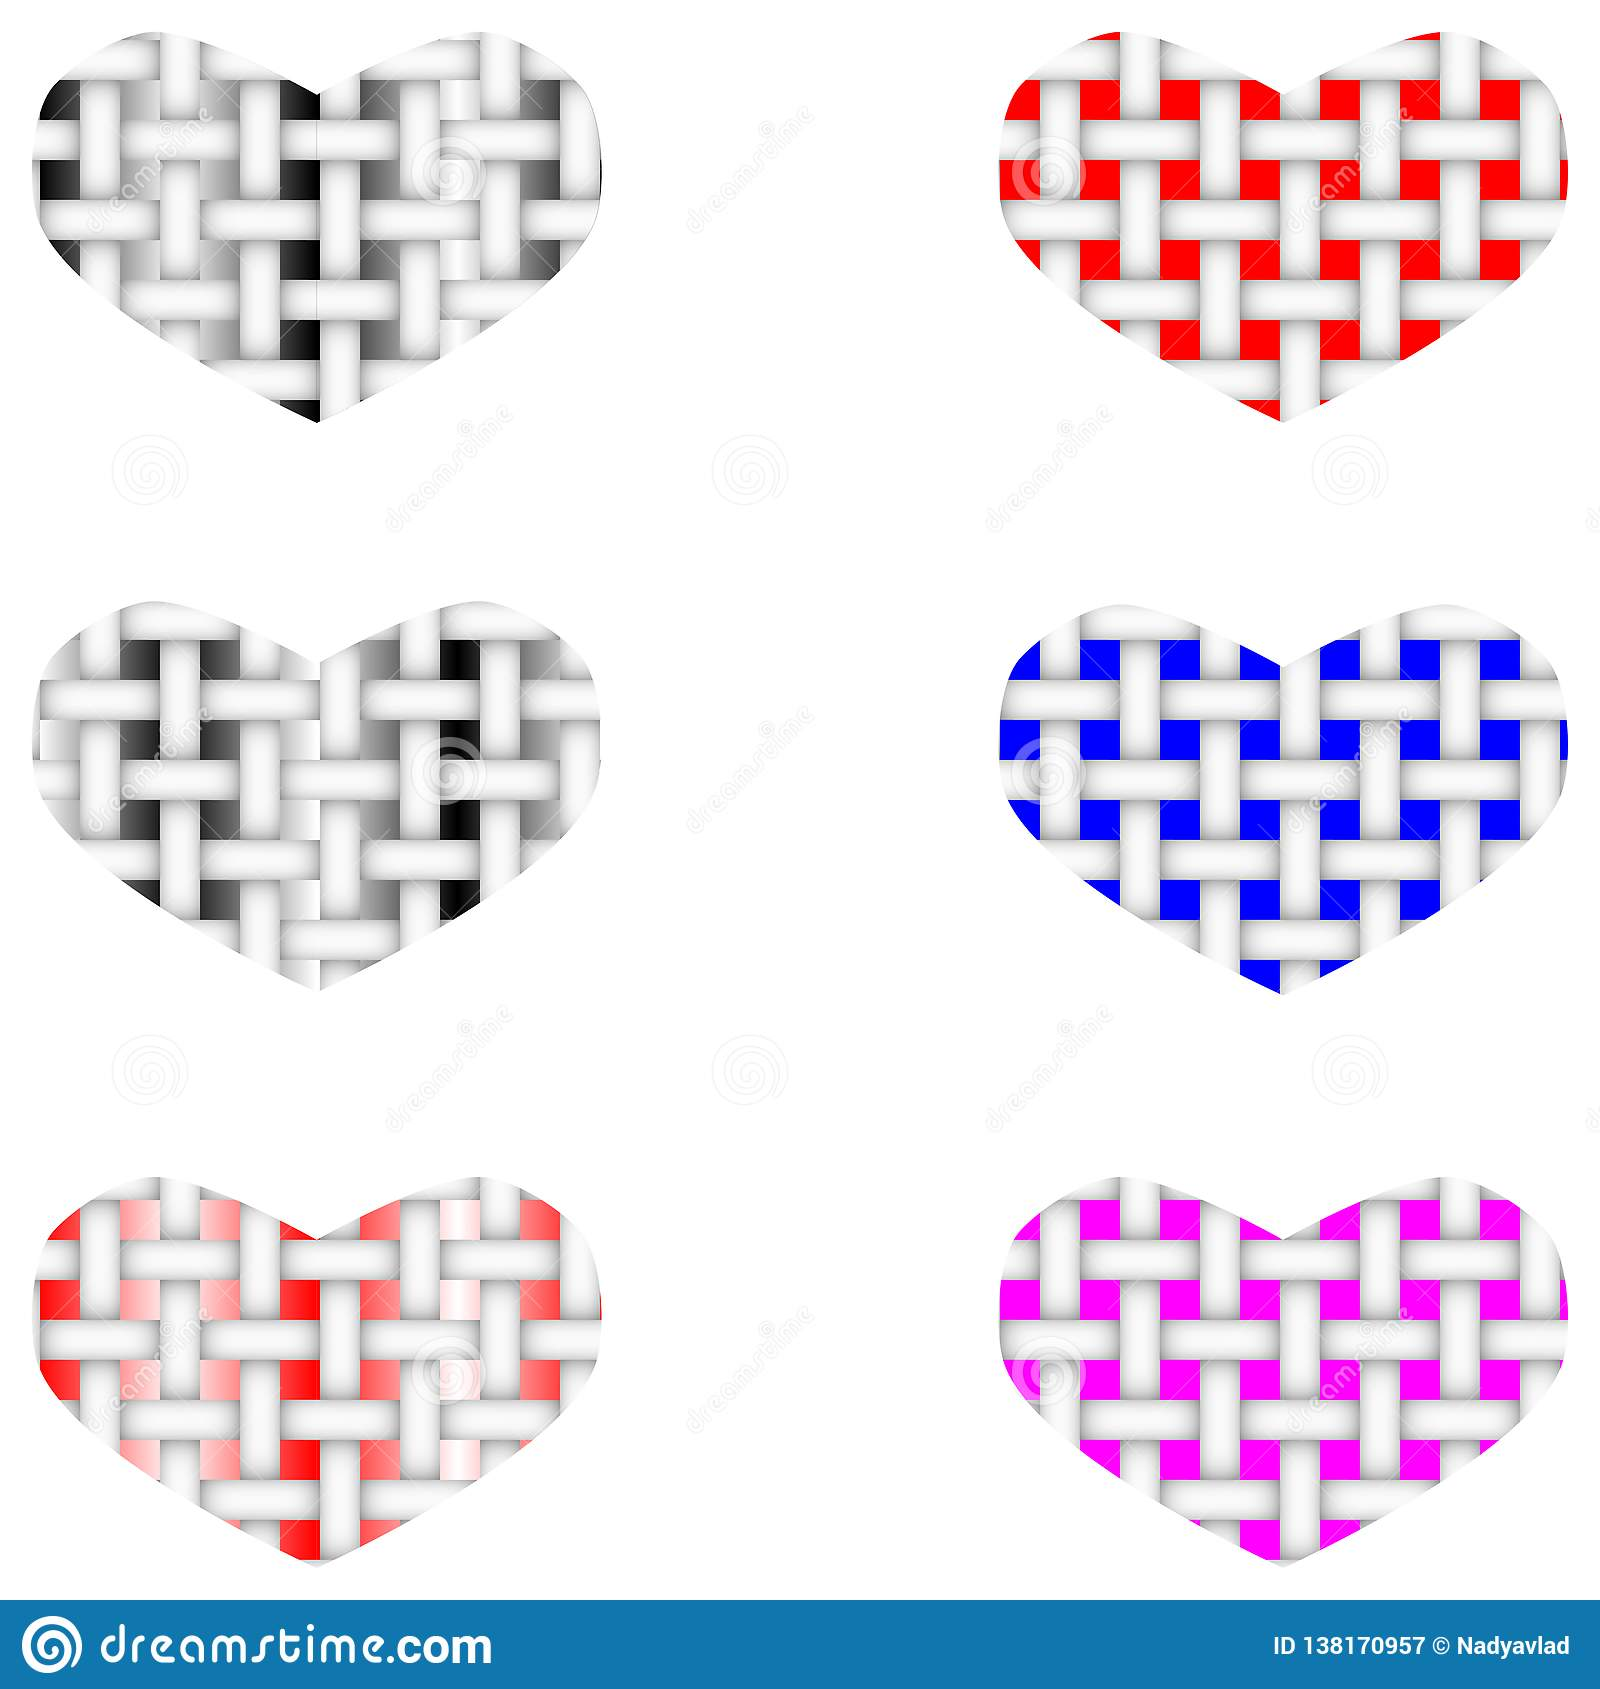 Fabric vector structure of the heart